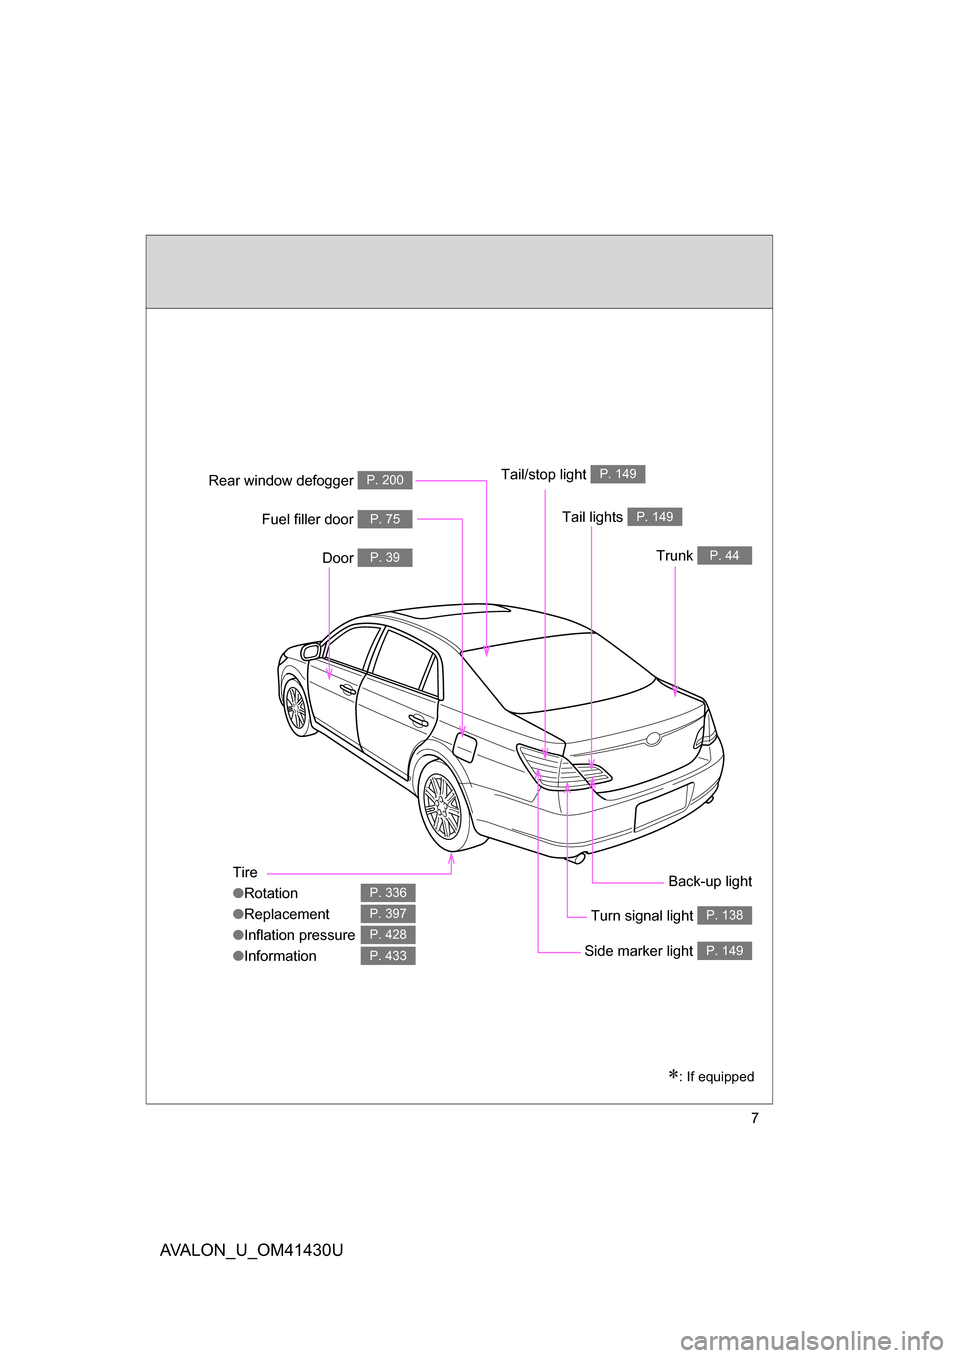 TOYOTA AVALON 2009 XX30 / 3.G Owners Manual, Page 7